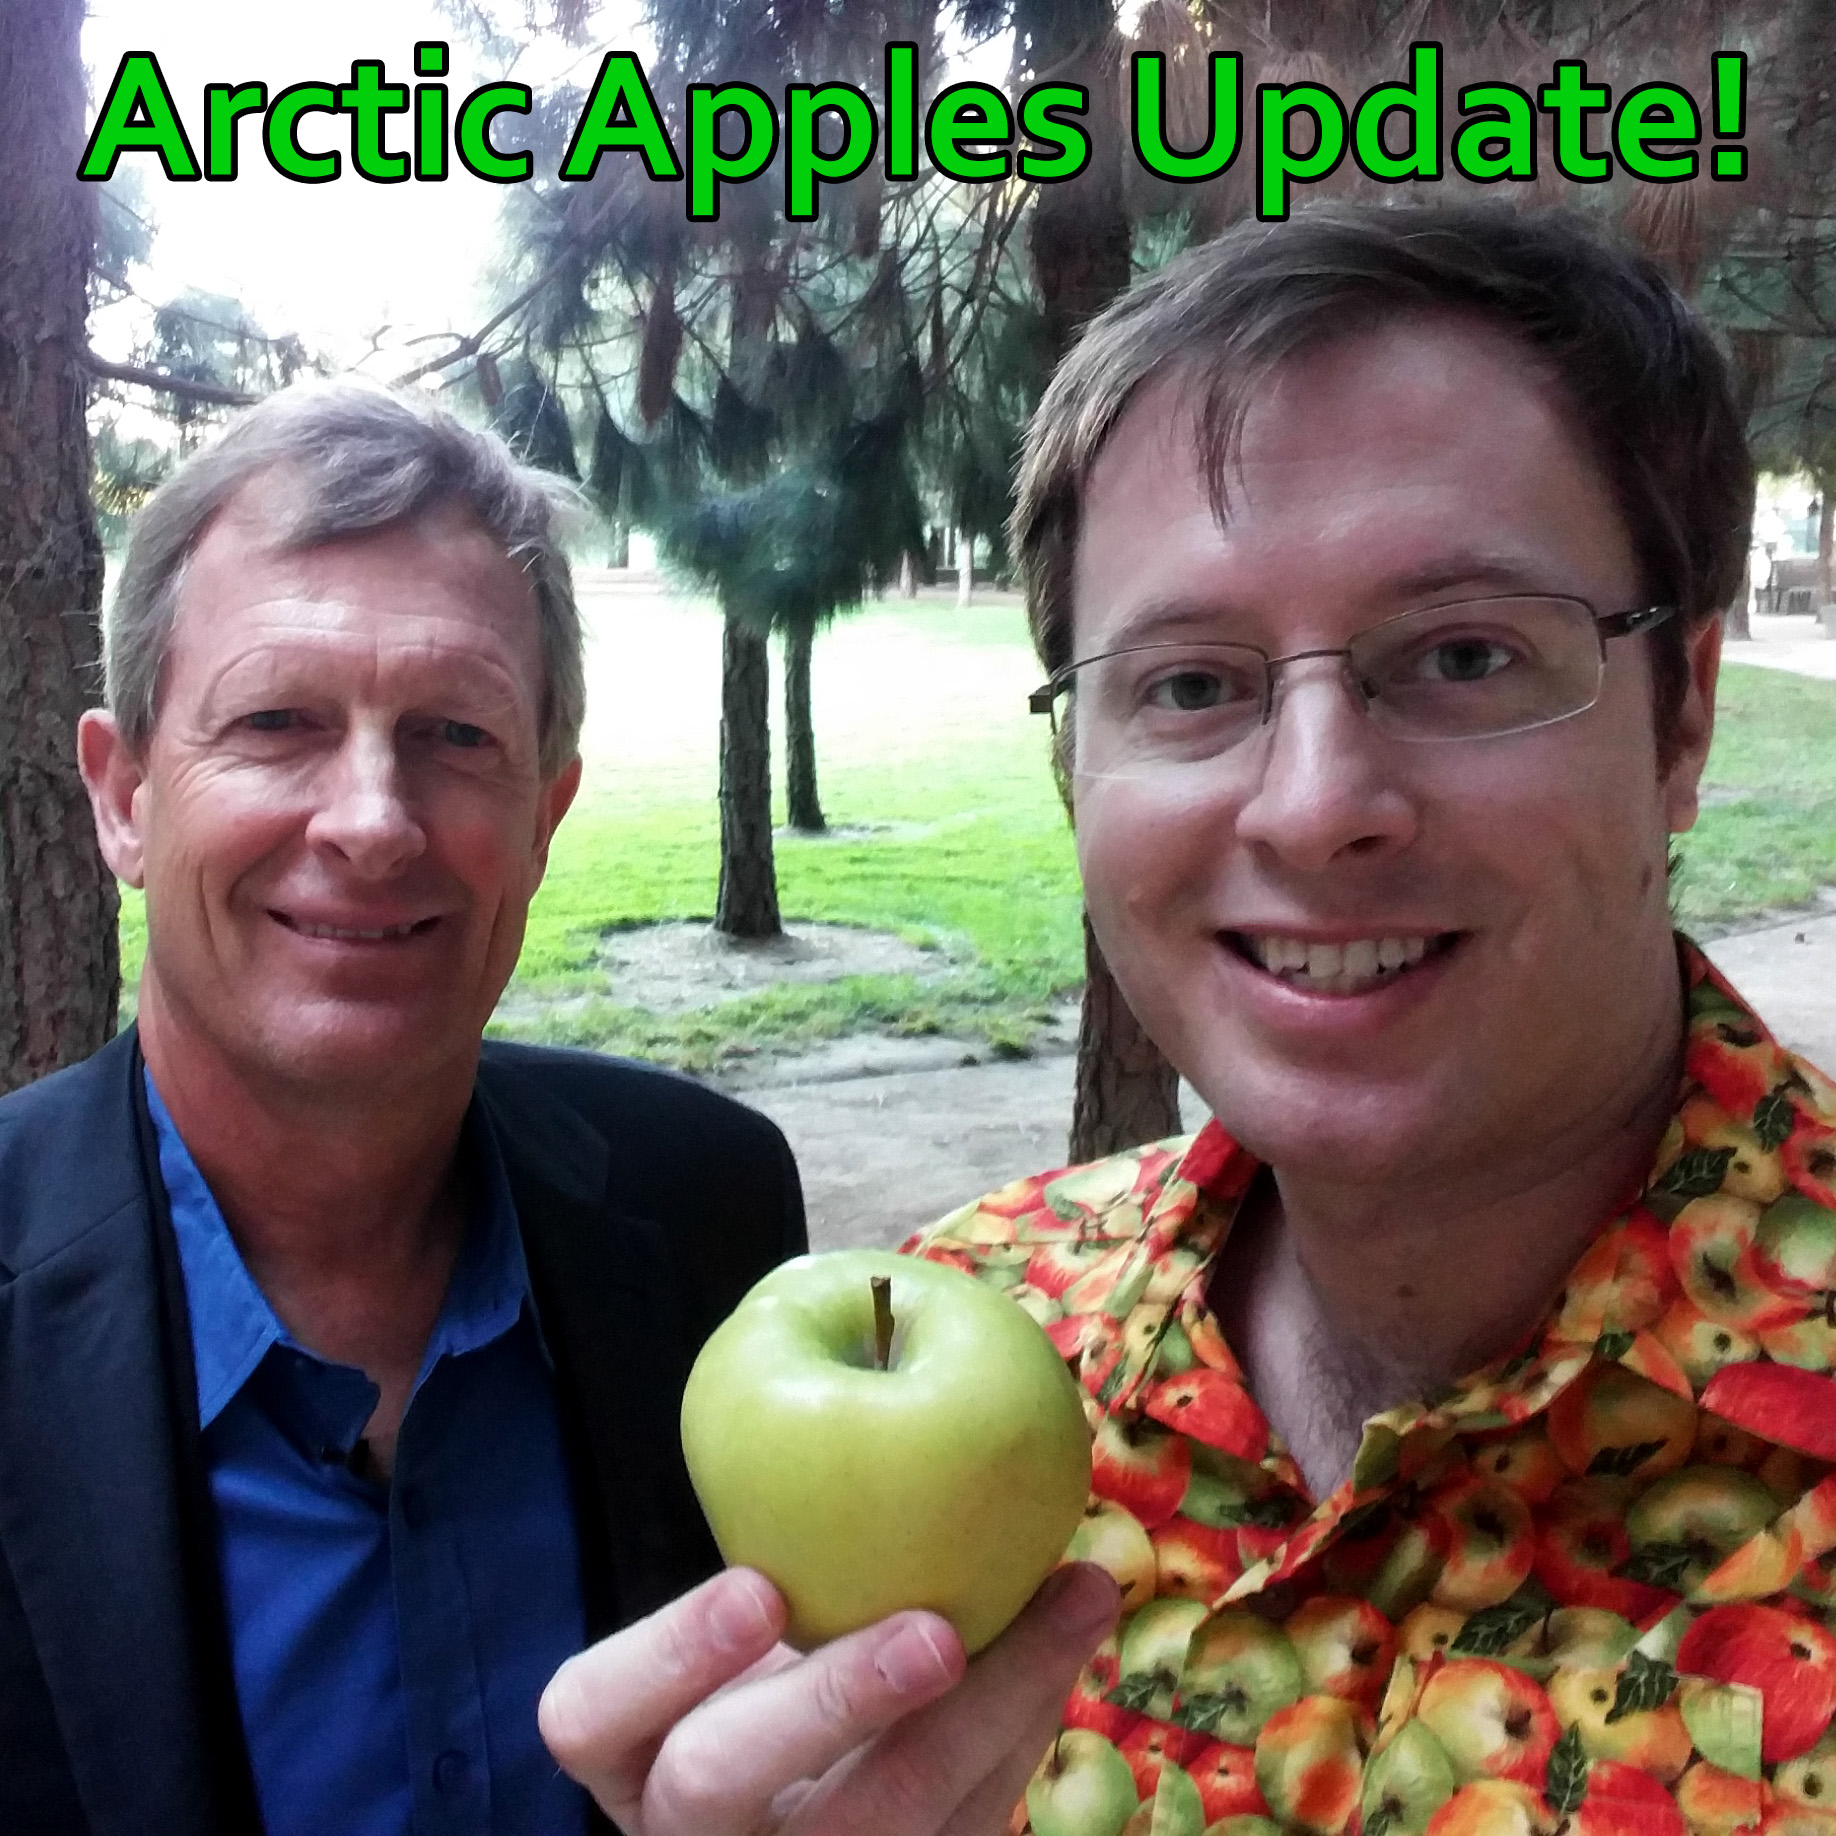 Arctic Apples Update at SynBioBeta